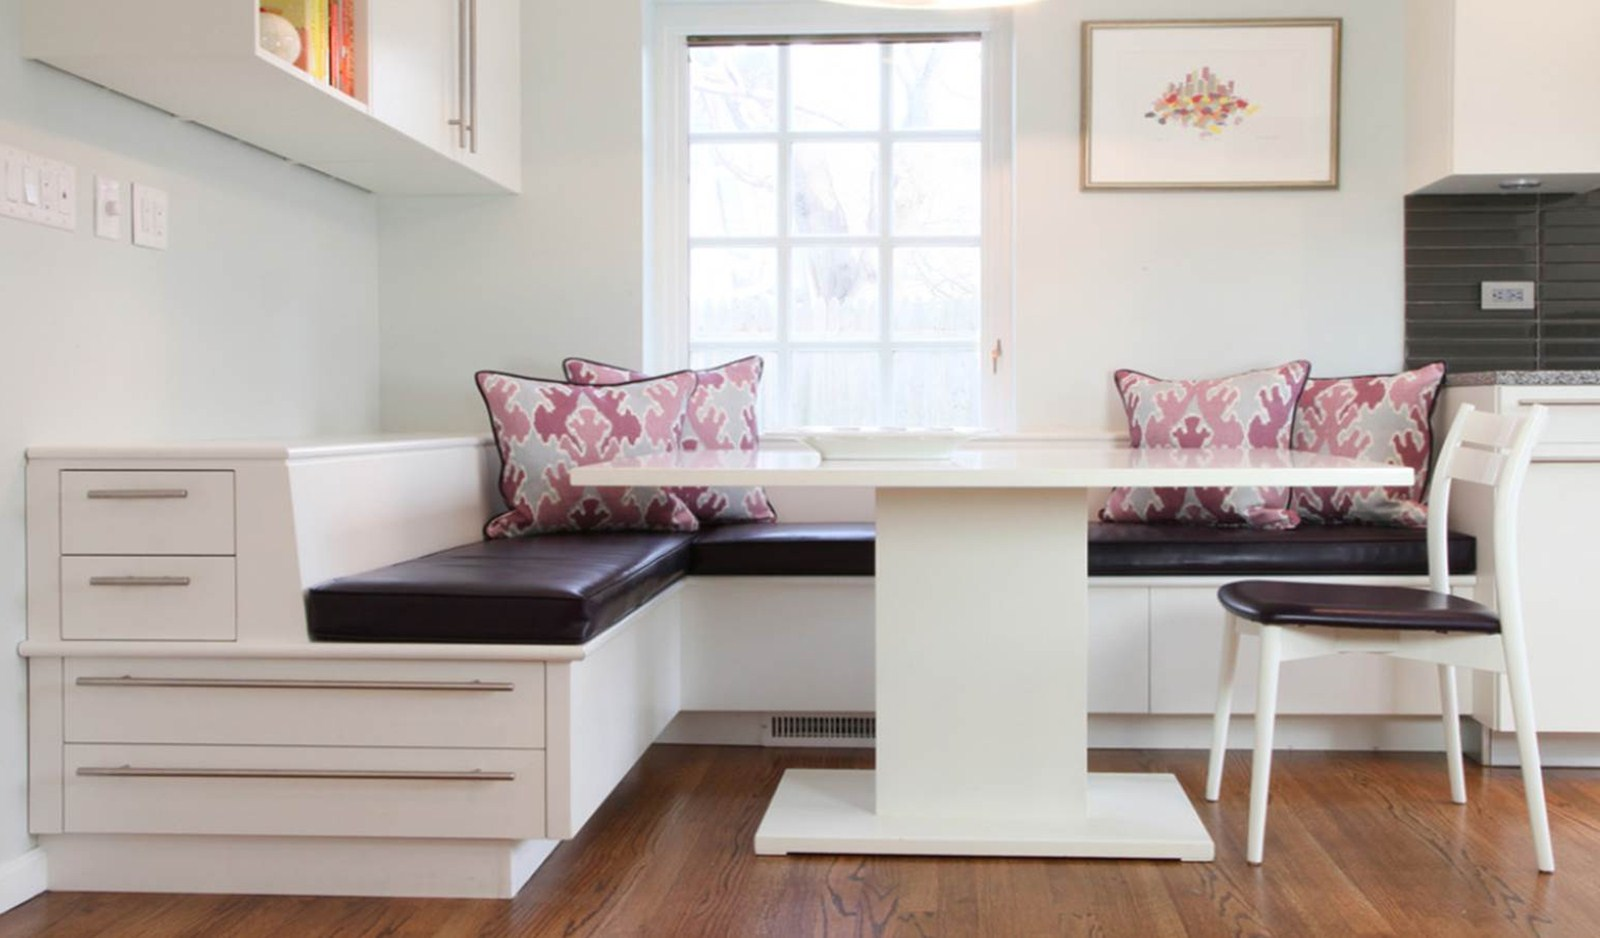 kitchen bench seating height  Kitchen Bench Seating for